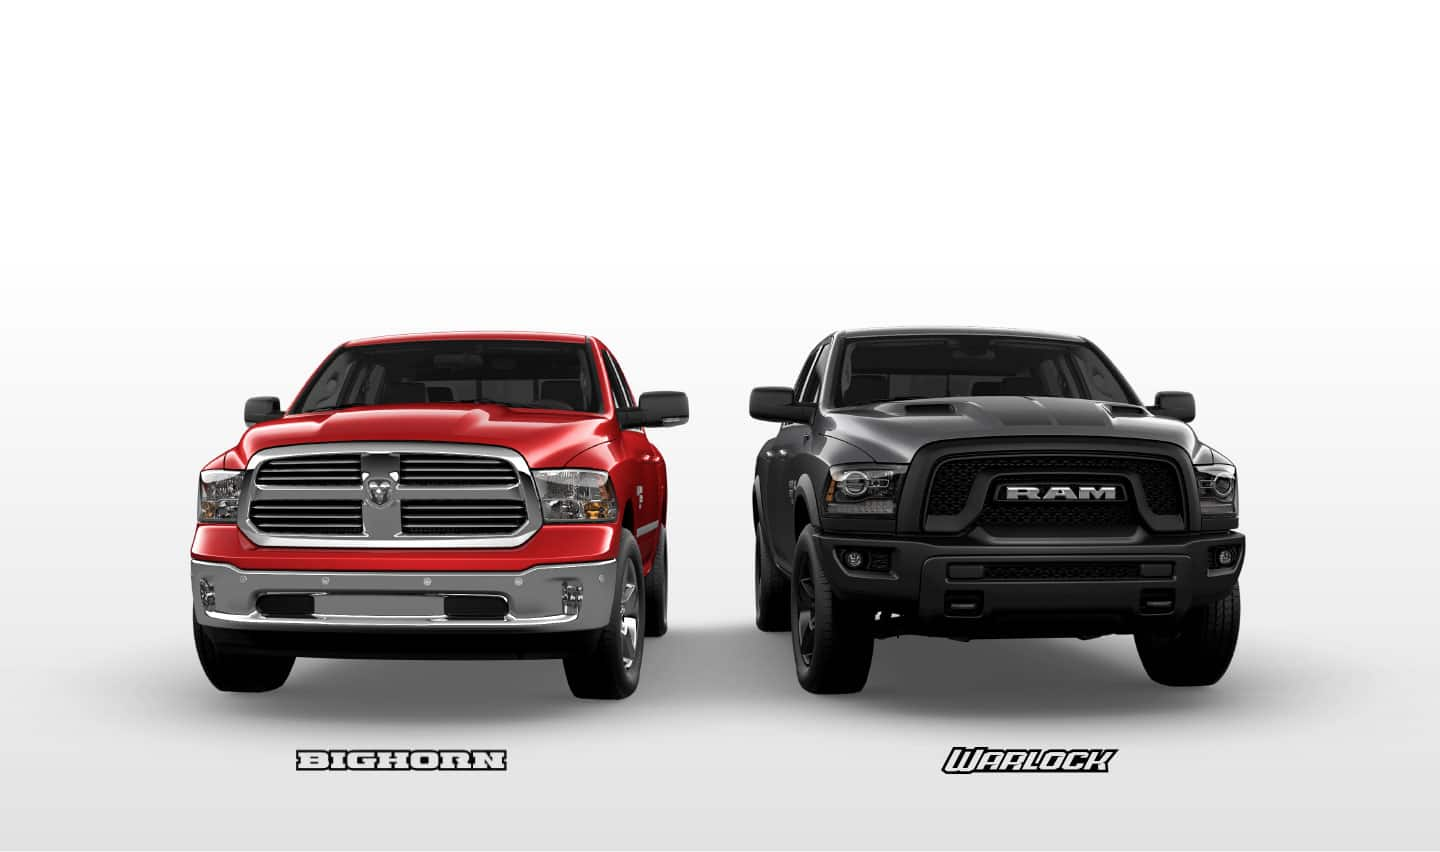 Ram 1500 Classic Bighorn and Warlock and the Bighorn and Warlock badges.